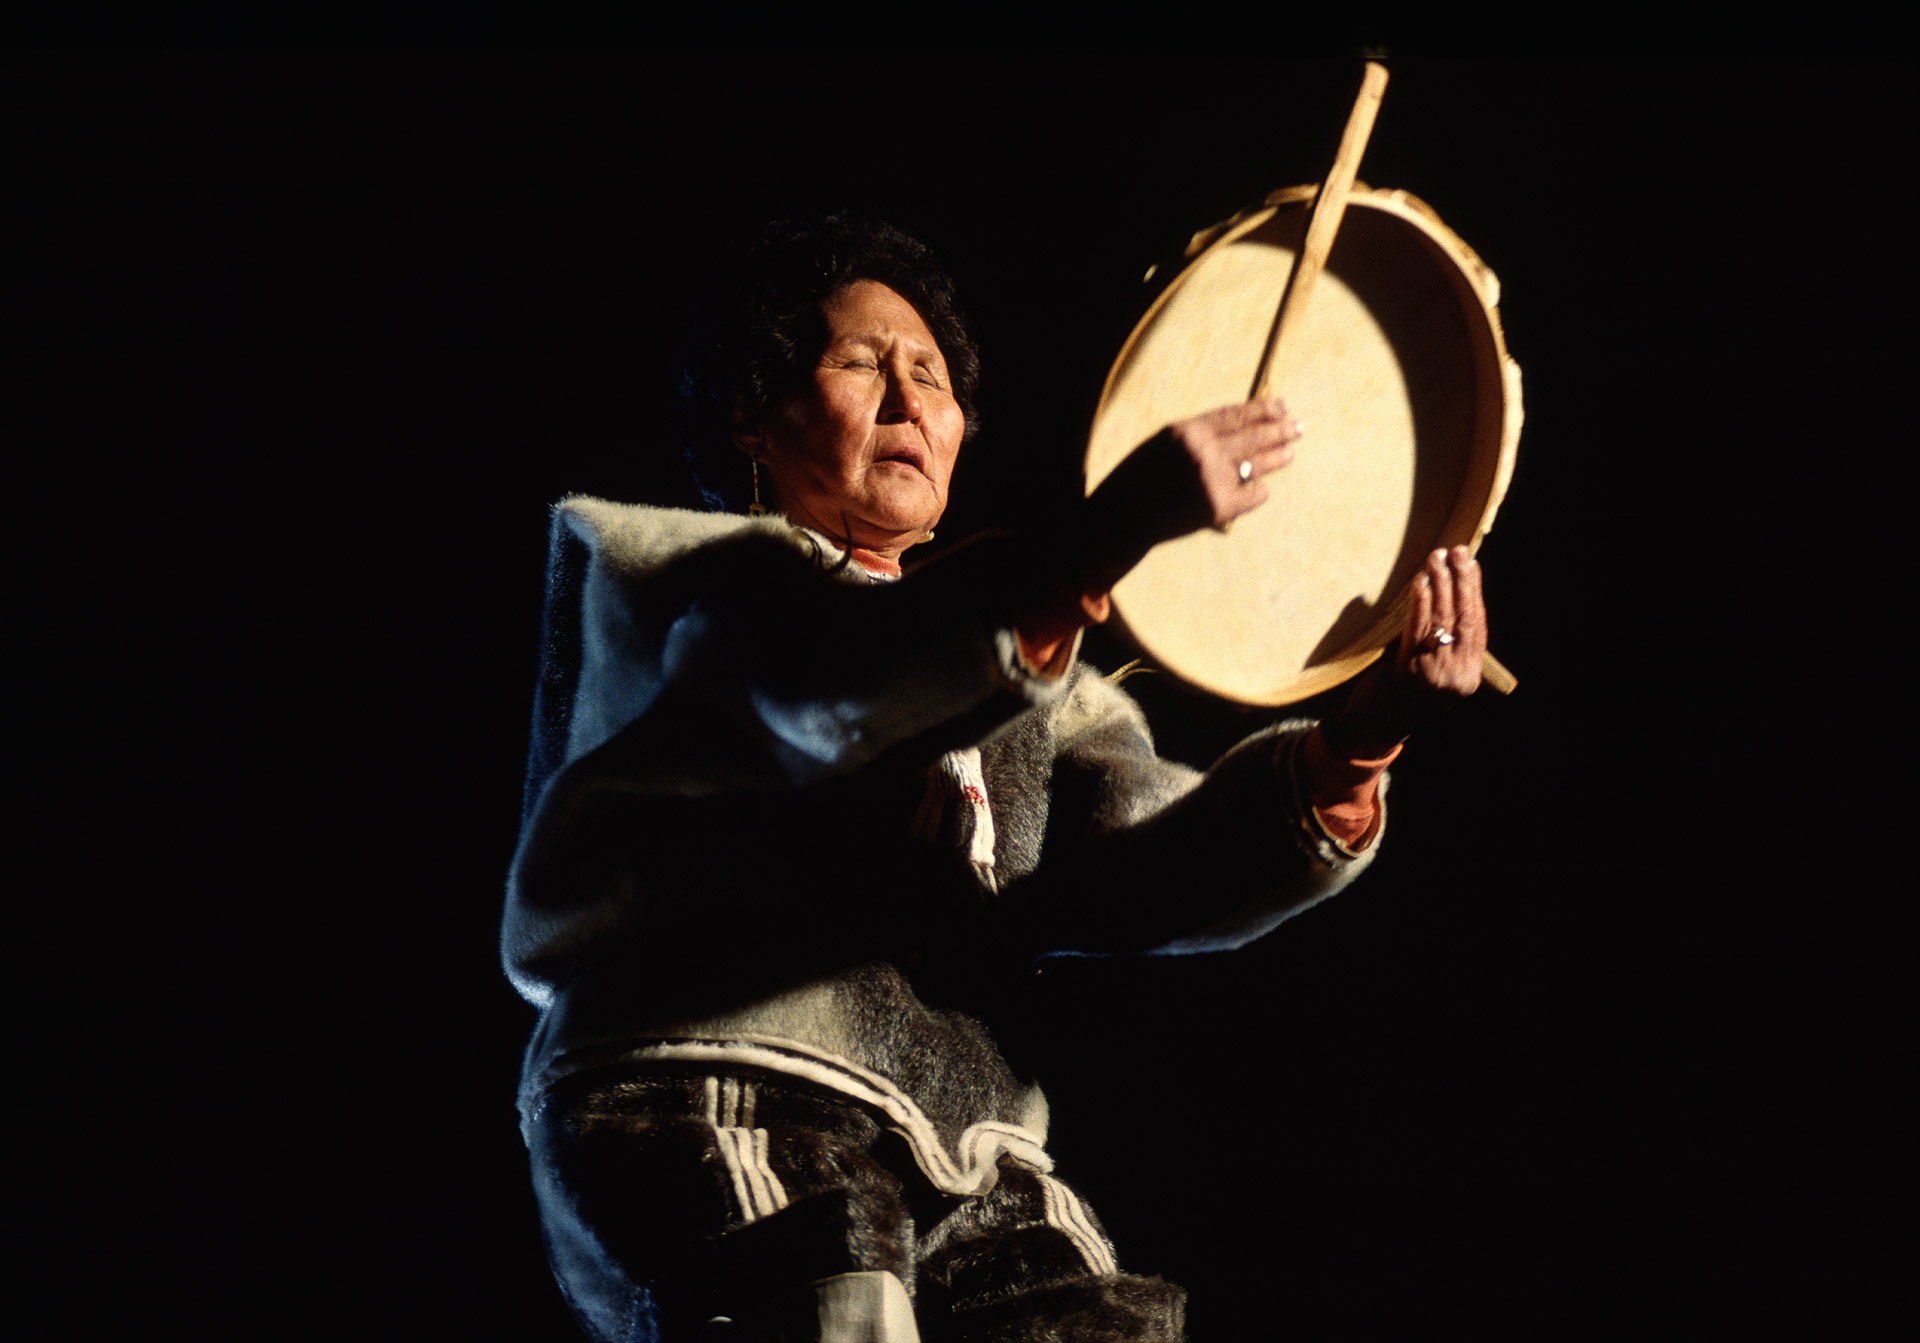 A drum dancer performs a ritual ceremony in Ammassalik in Greenland